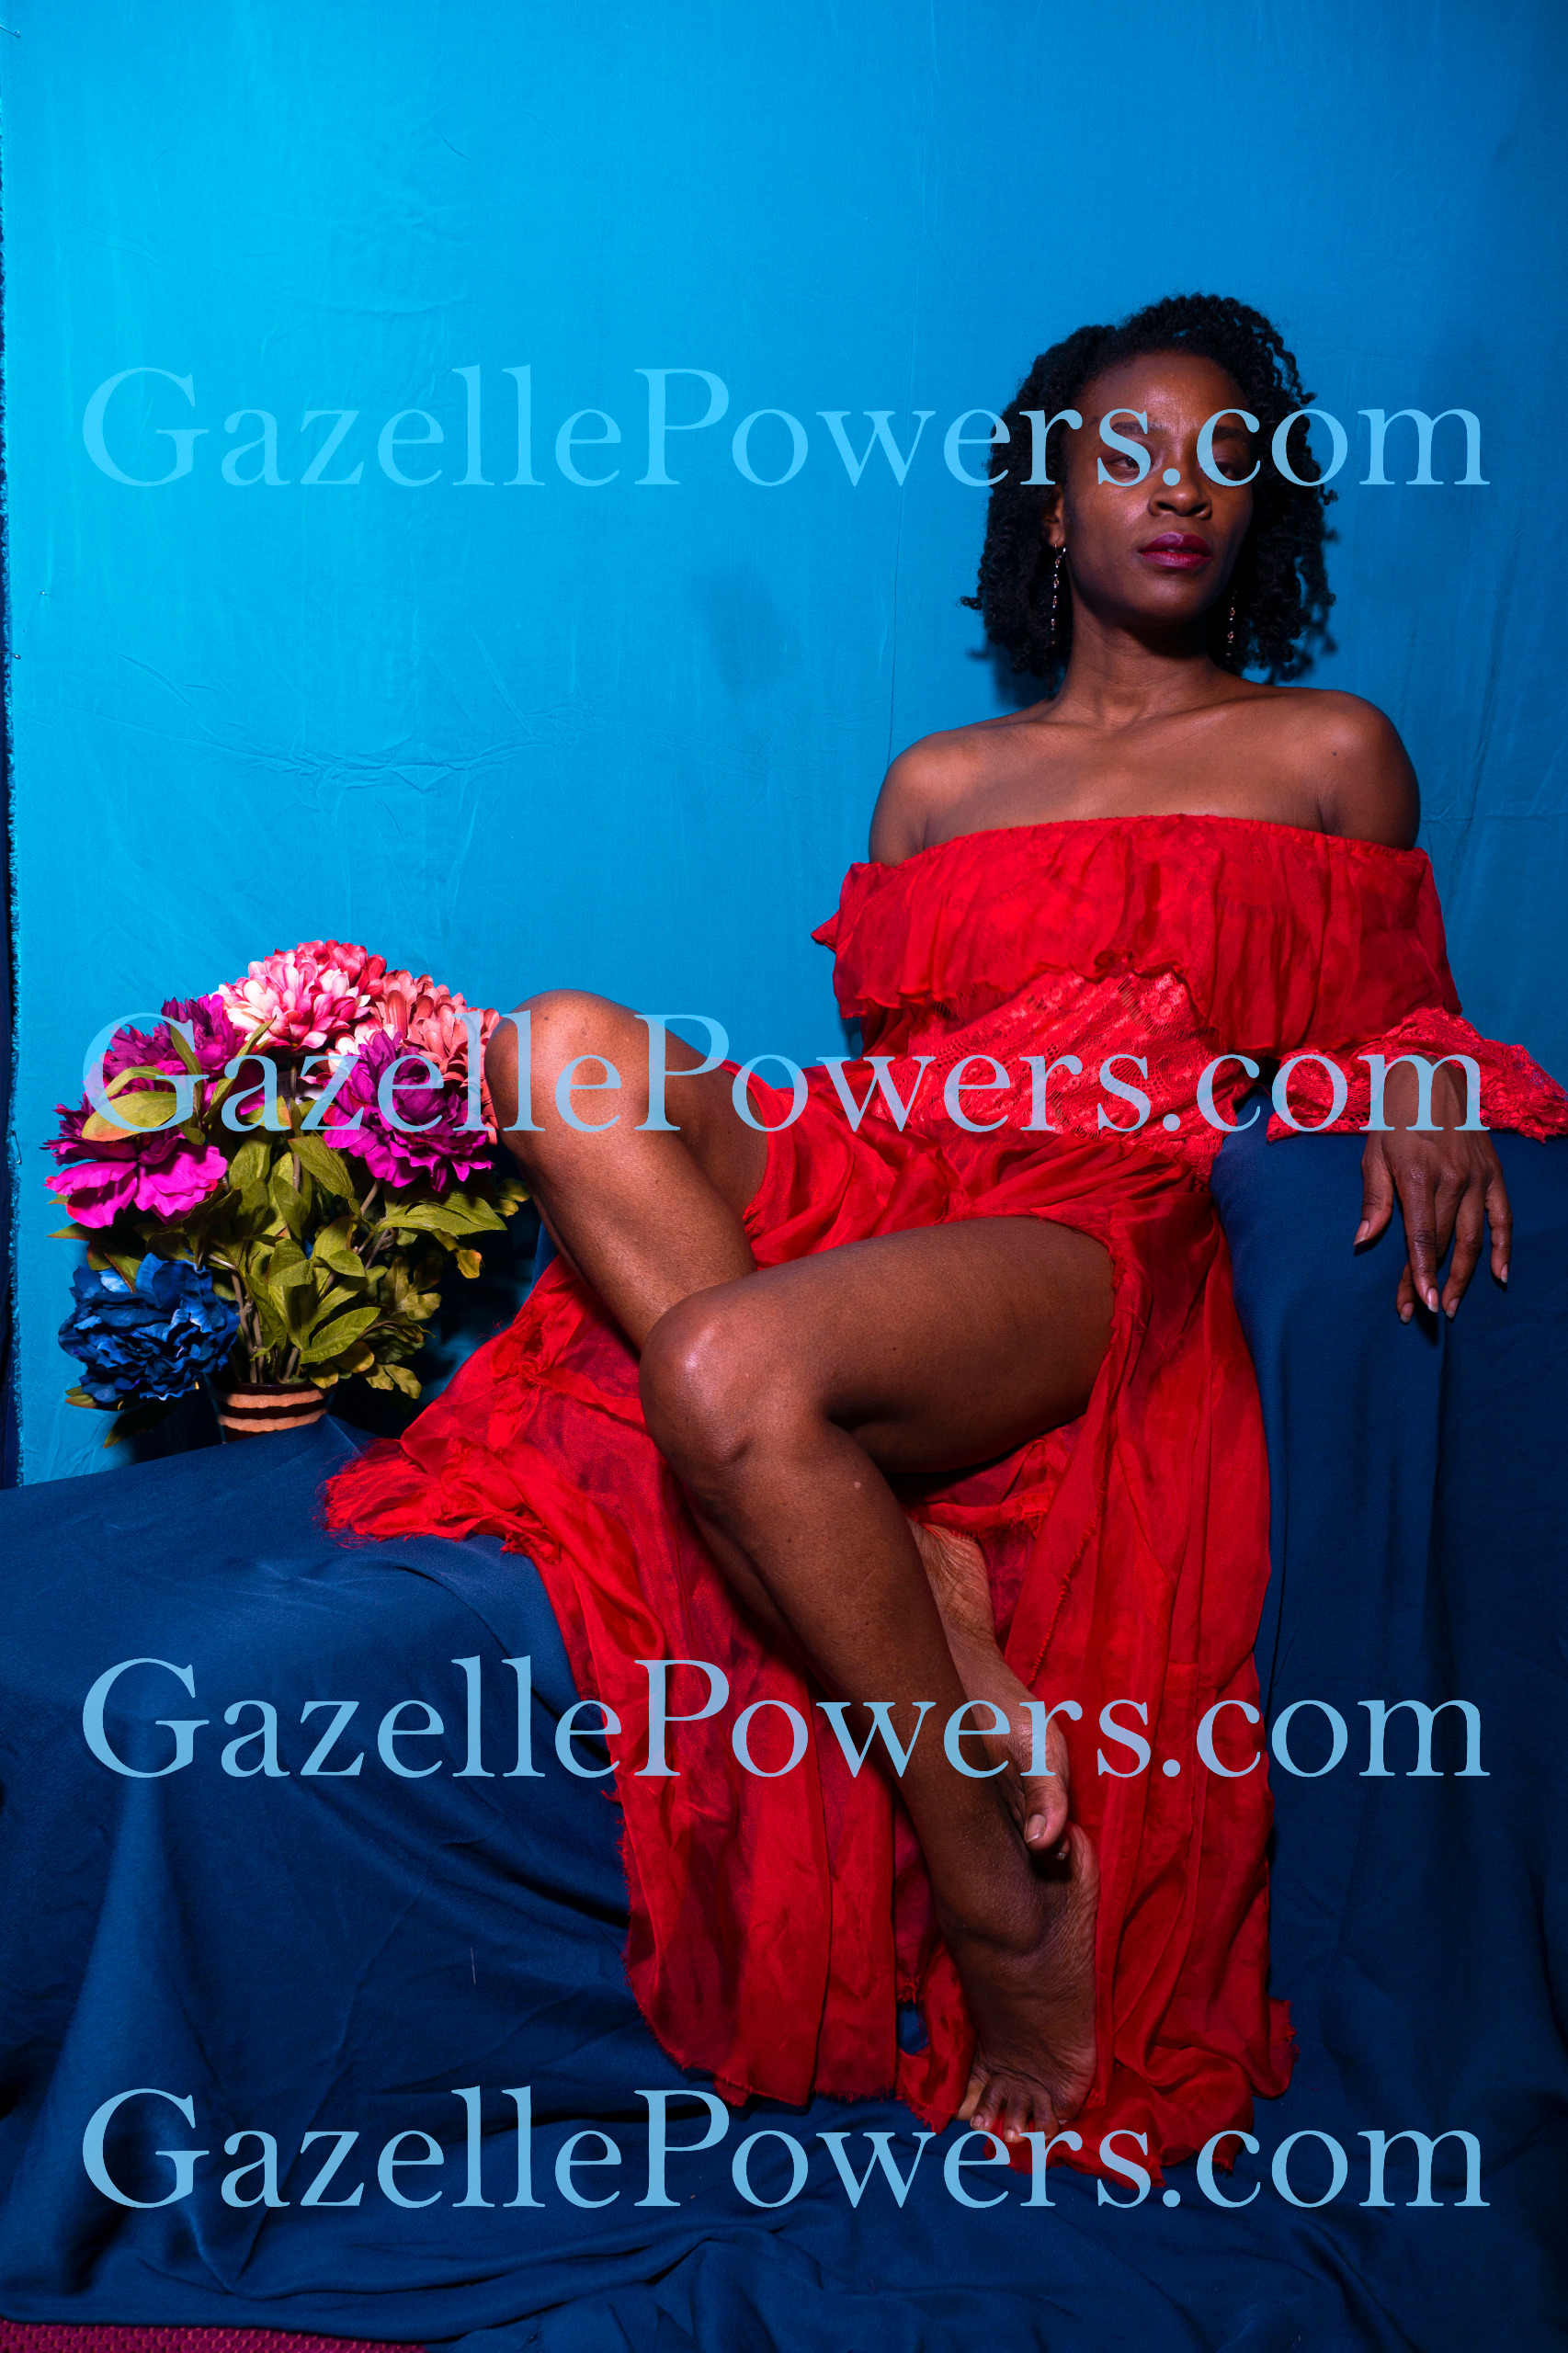 July 12th Session - Lady in Red